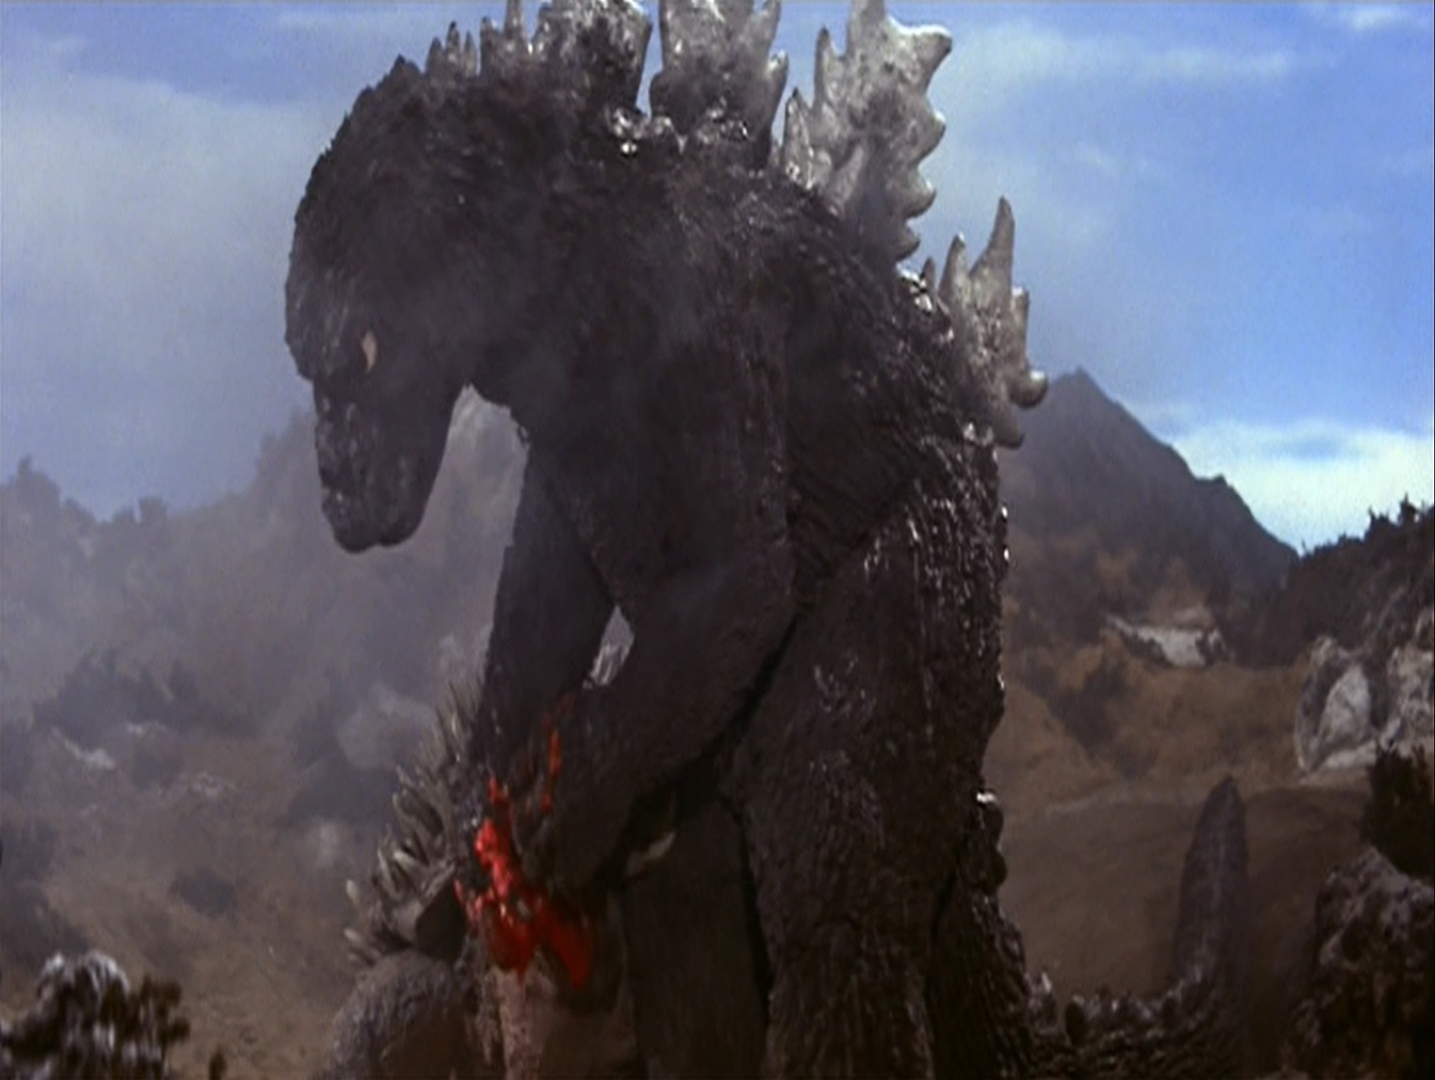 Godzilla vs. Mechagodzilla (1974) - Midnite Reviews